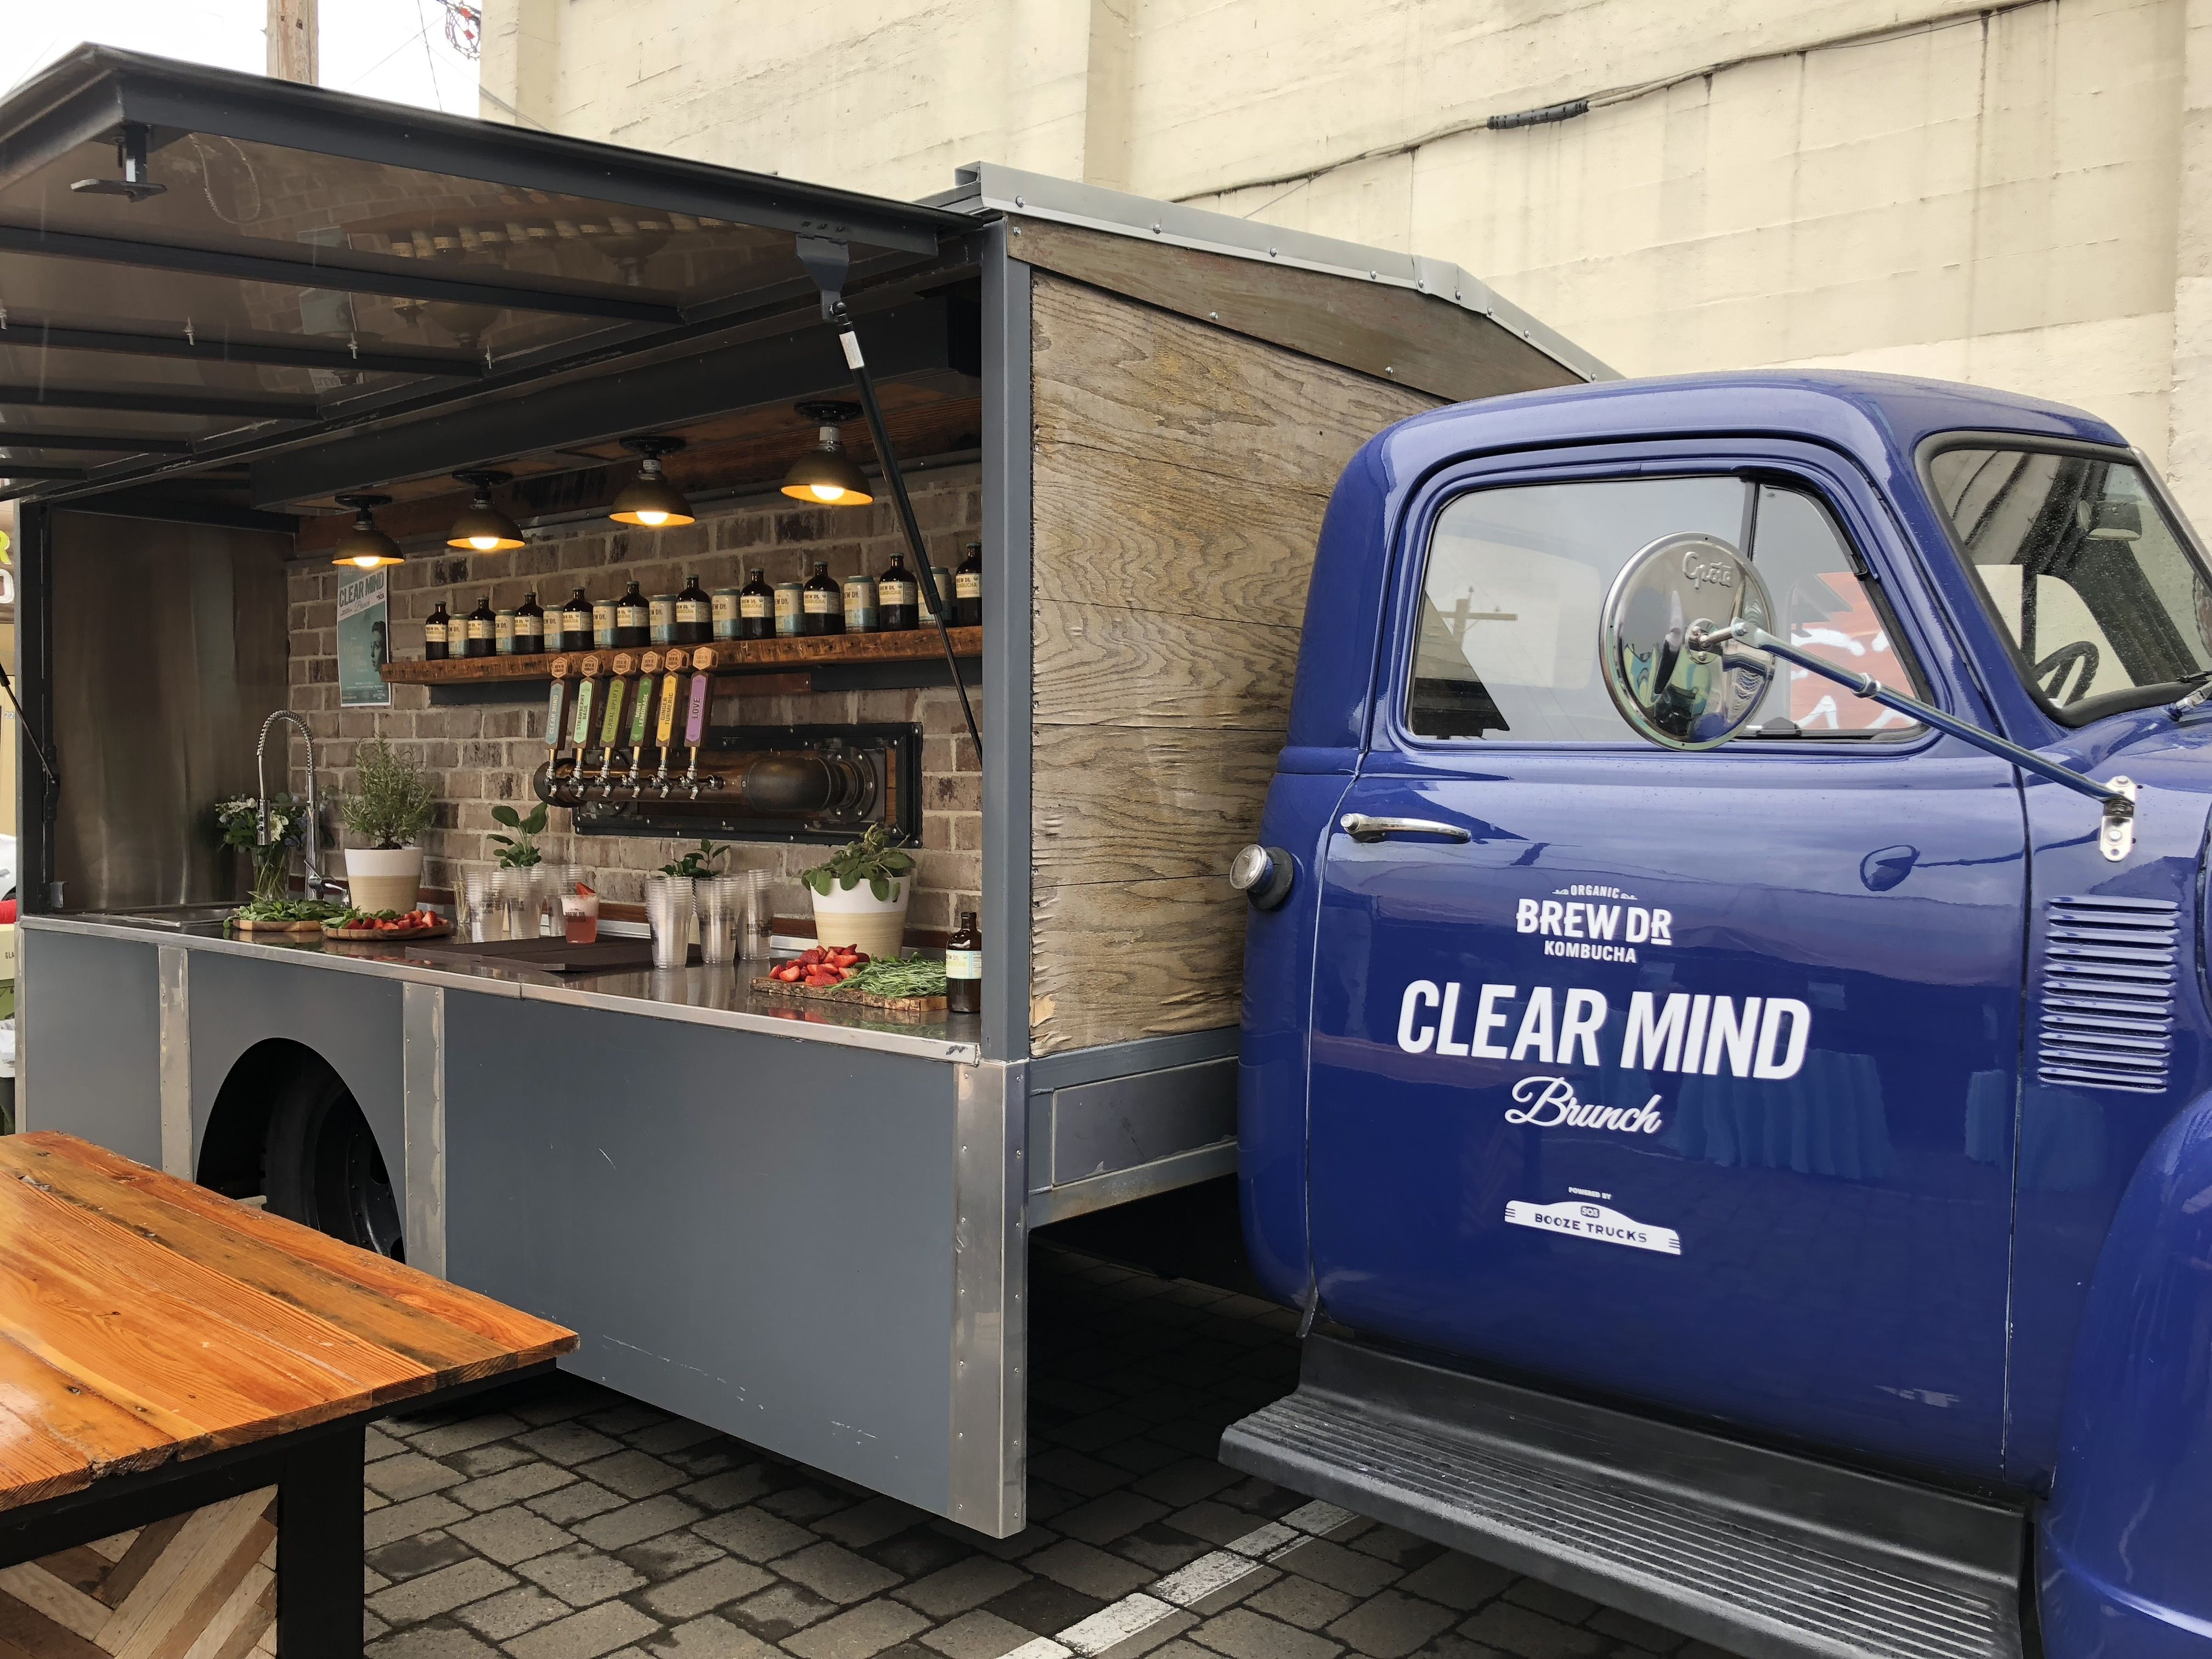 Mobile bar beverage services for portland and its